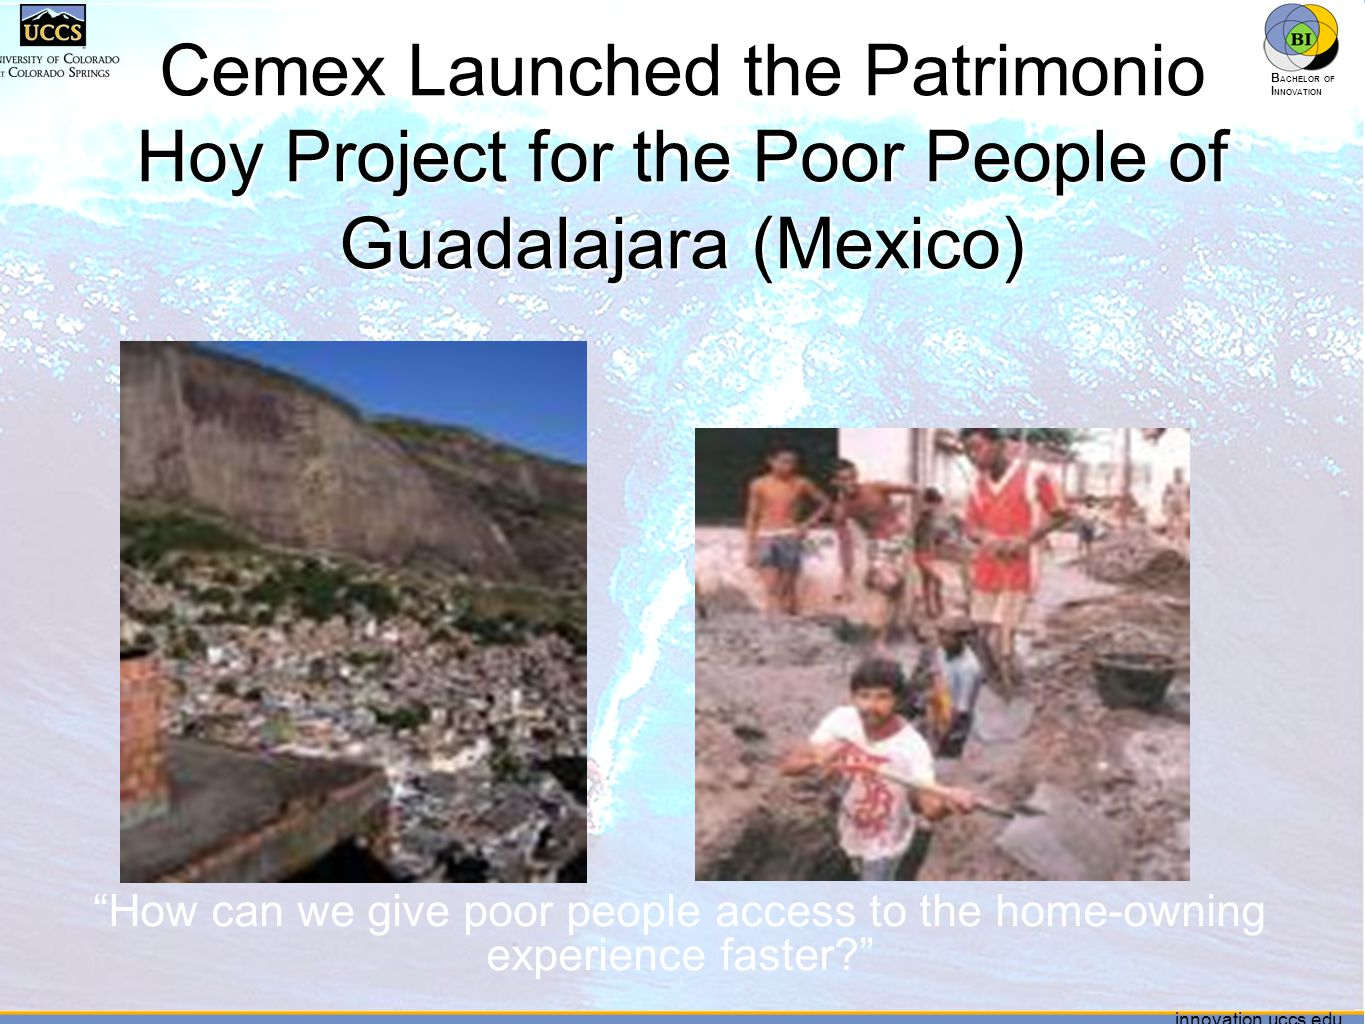 innovation.uccs.edu B ACHELOR OF I NNOVATION ™ innovation.uccs.edu B ACHELOR OF I NNOVATION ™ Cemex Launched the Patrimonio Hoy Project for the Poor People of Guadalajara (Mexico) How can we give poor people access to the home-owning experience faster?